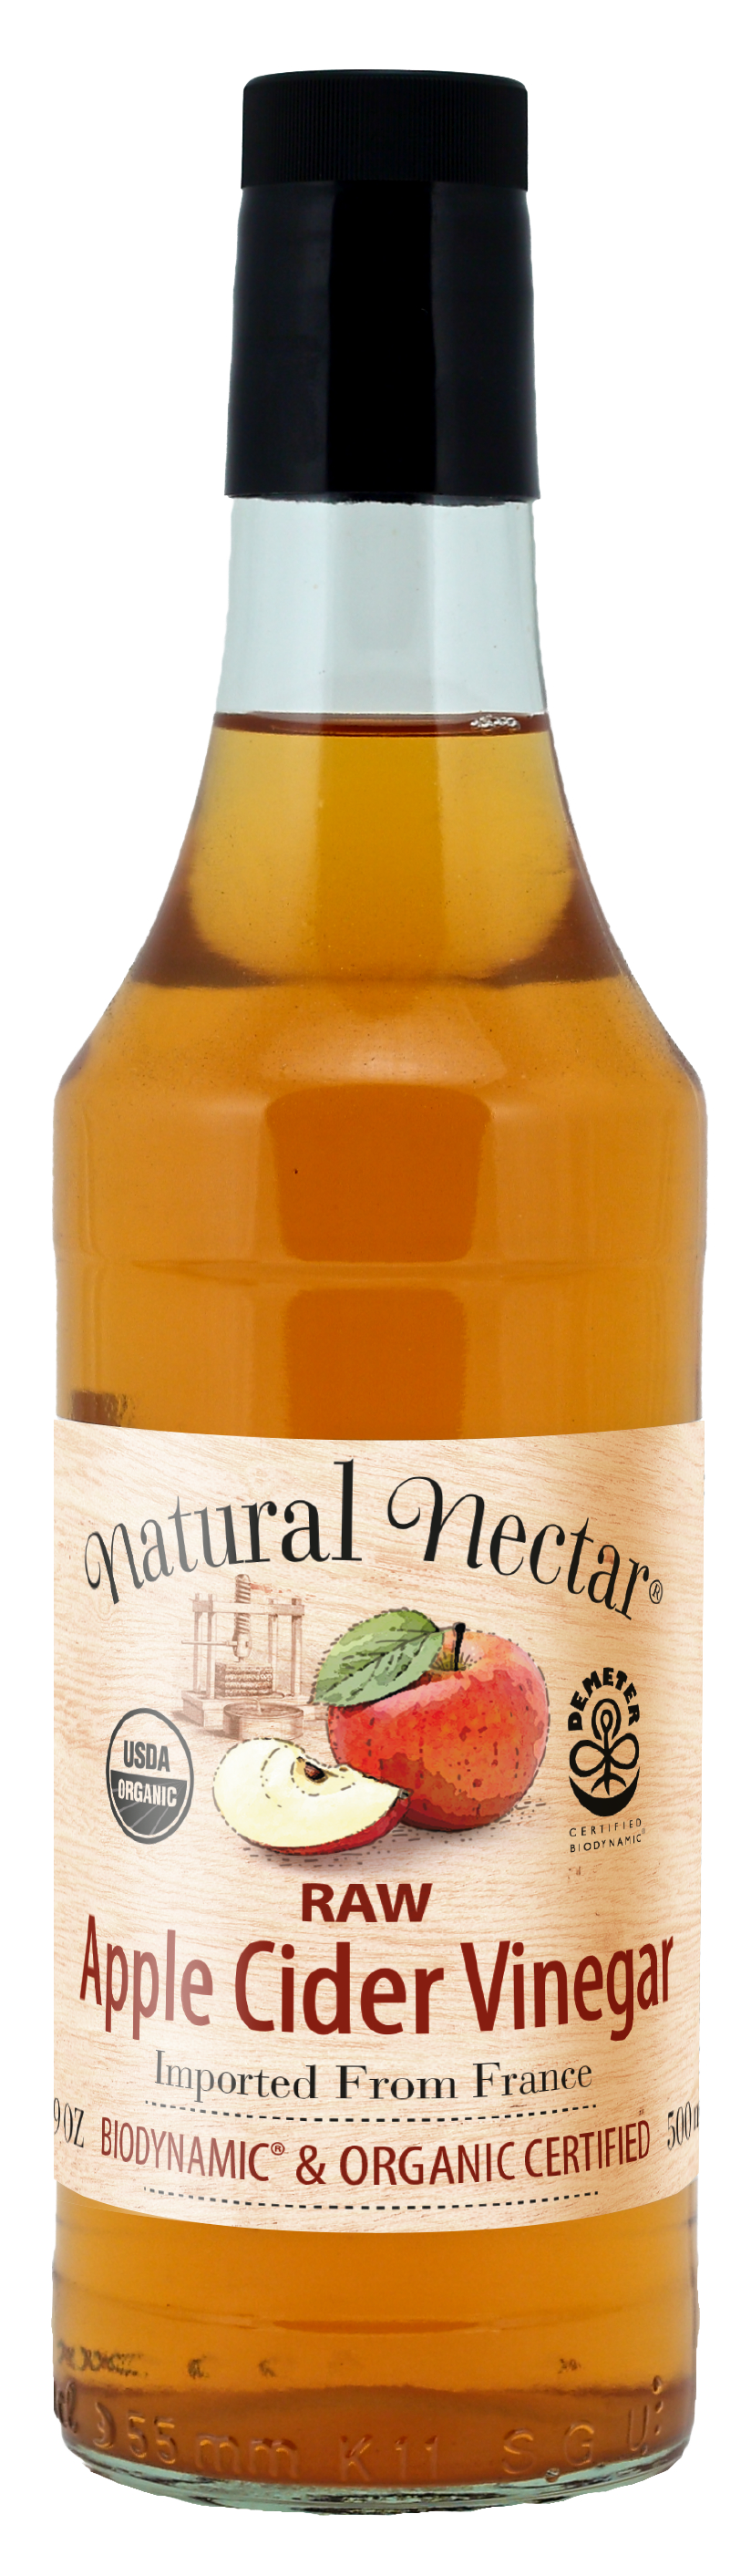 Cider vinegar has been made for centuries in France. For